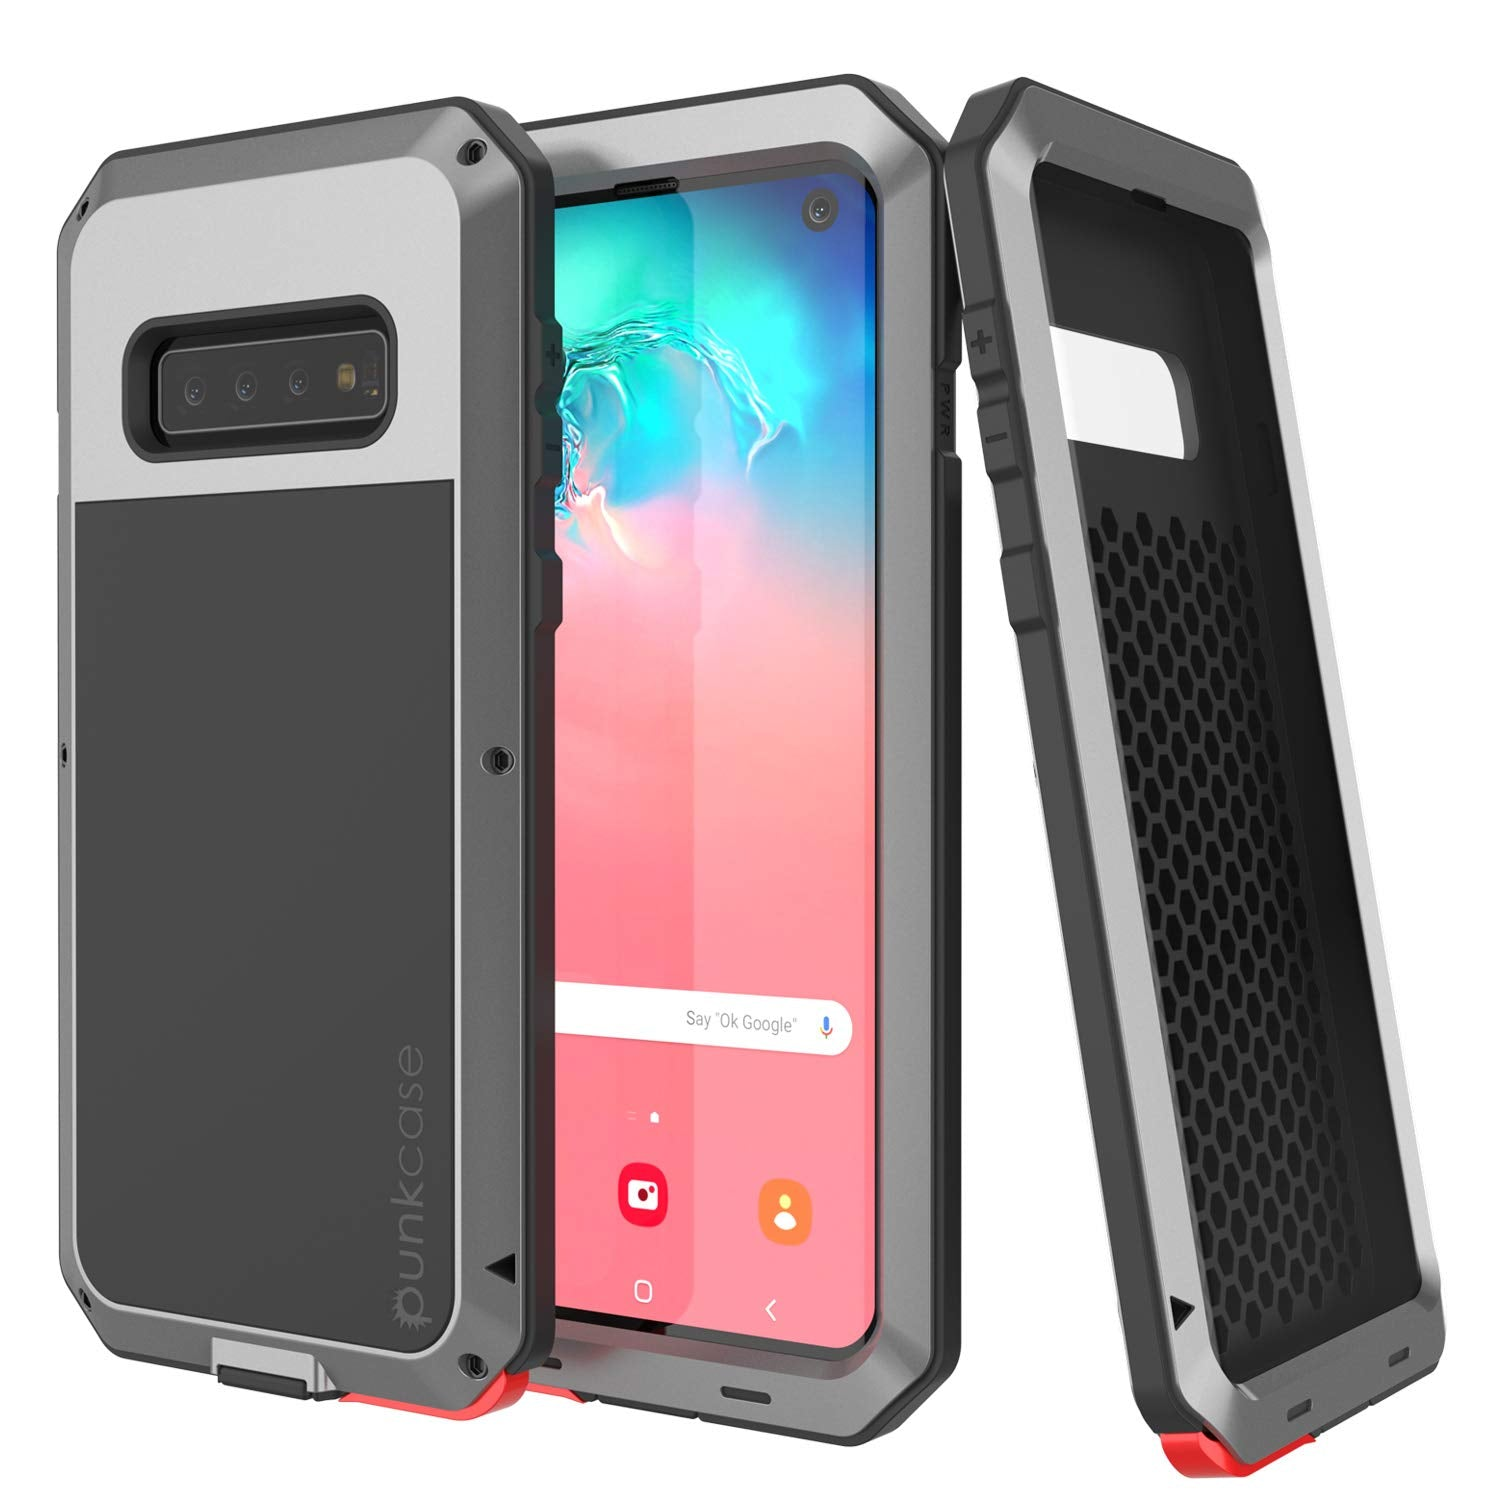 Galaxy S10 Metal Case, Heavy Duty Military Grade Rugged Armor Cover [Silver]